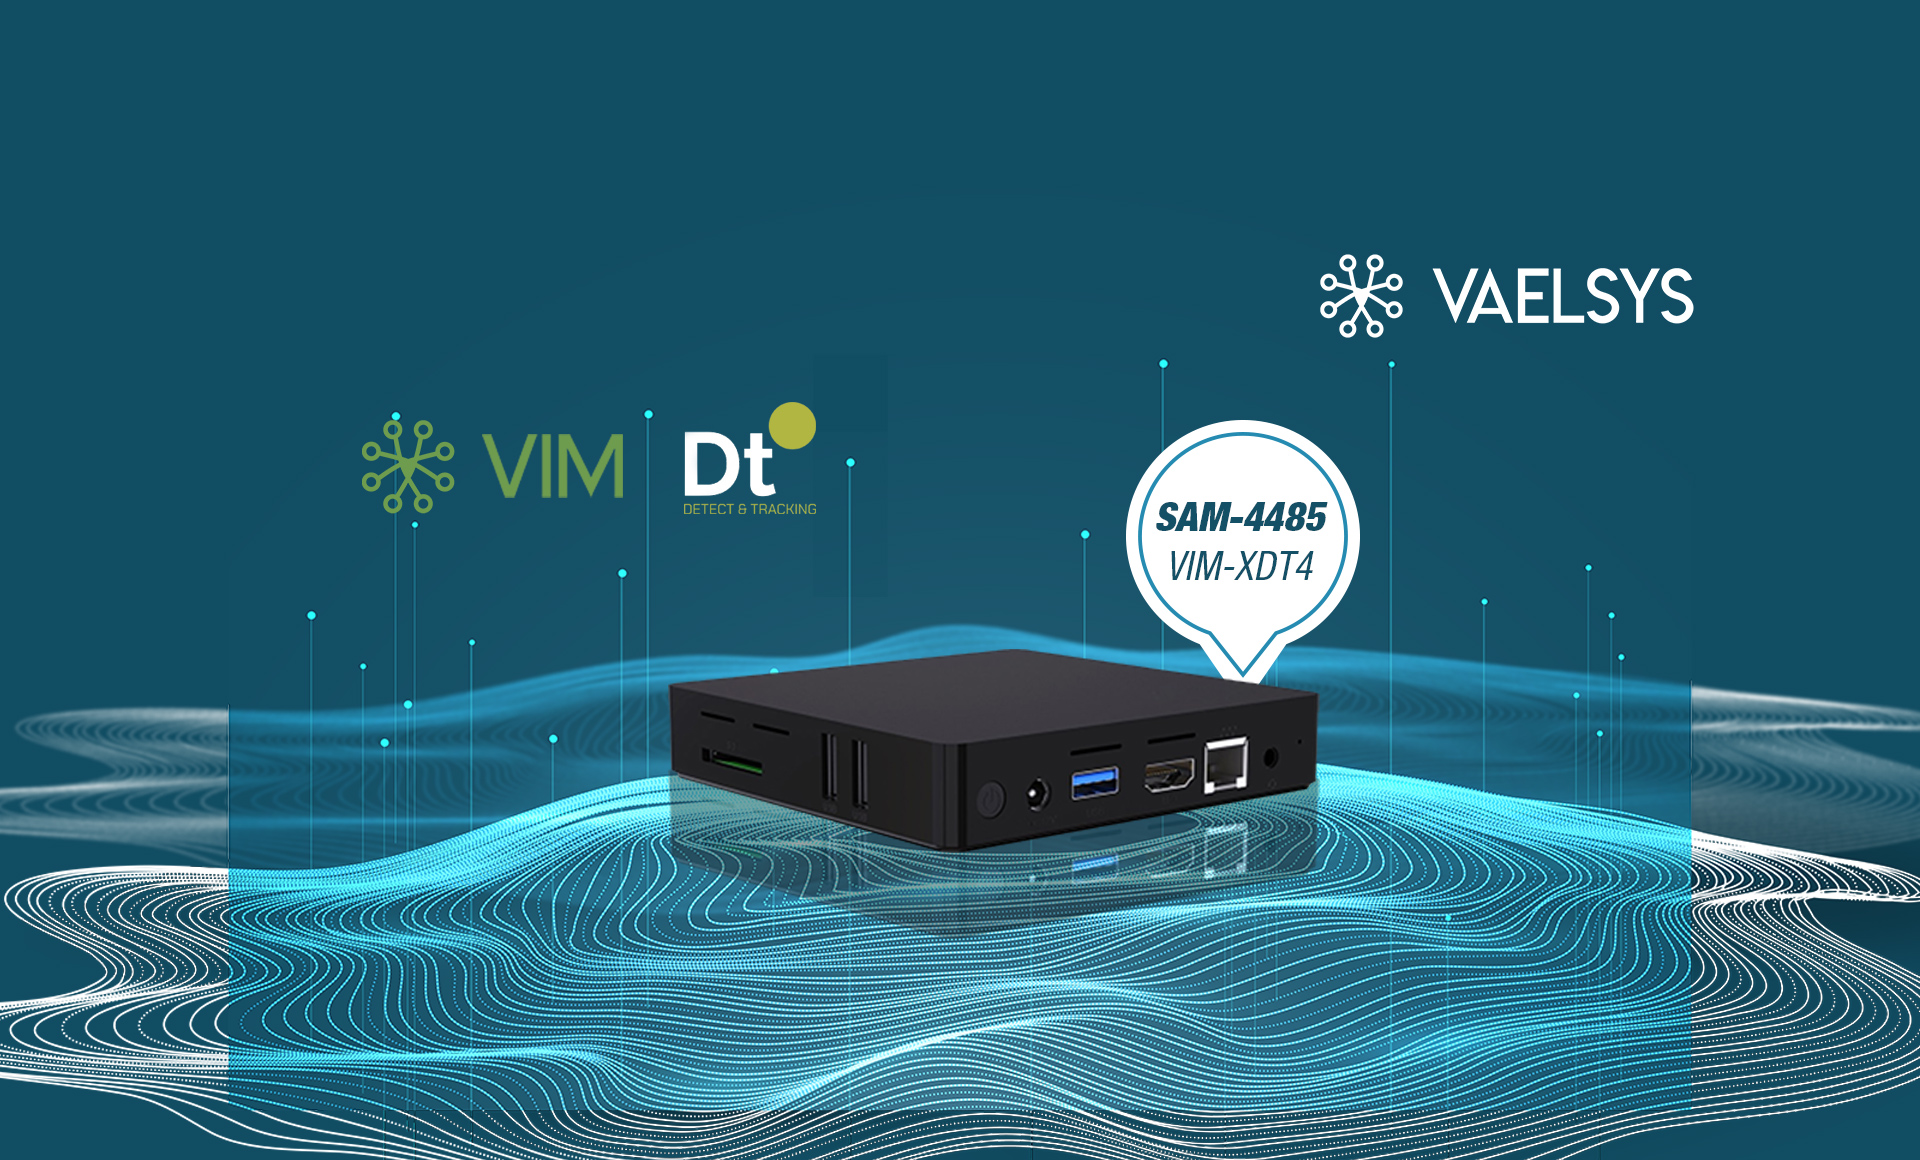 <b>Discover the benefits of VIM-XDT4 VAELSYS video analytics</b>